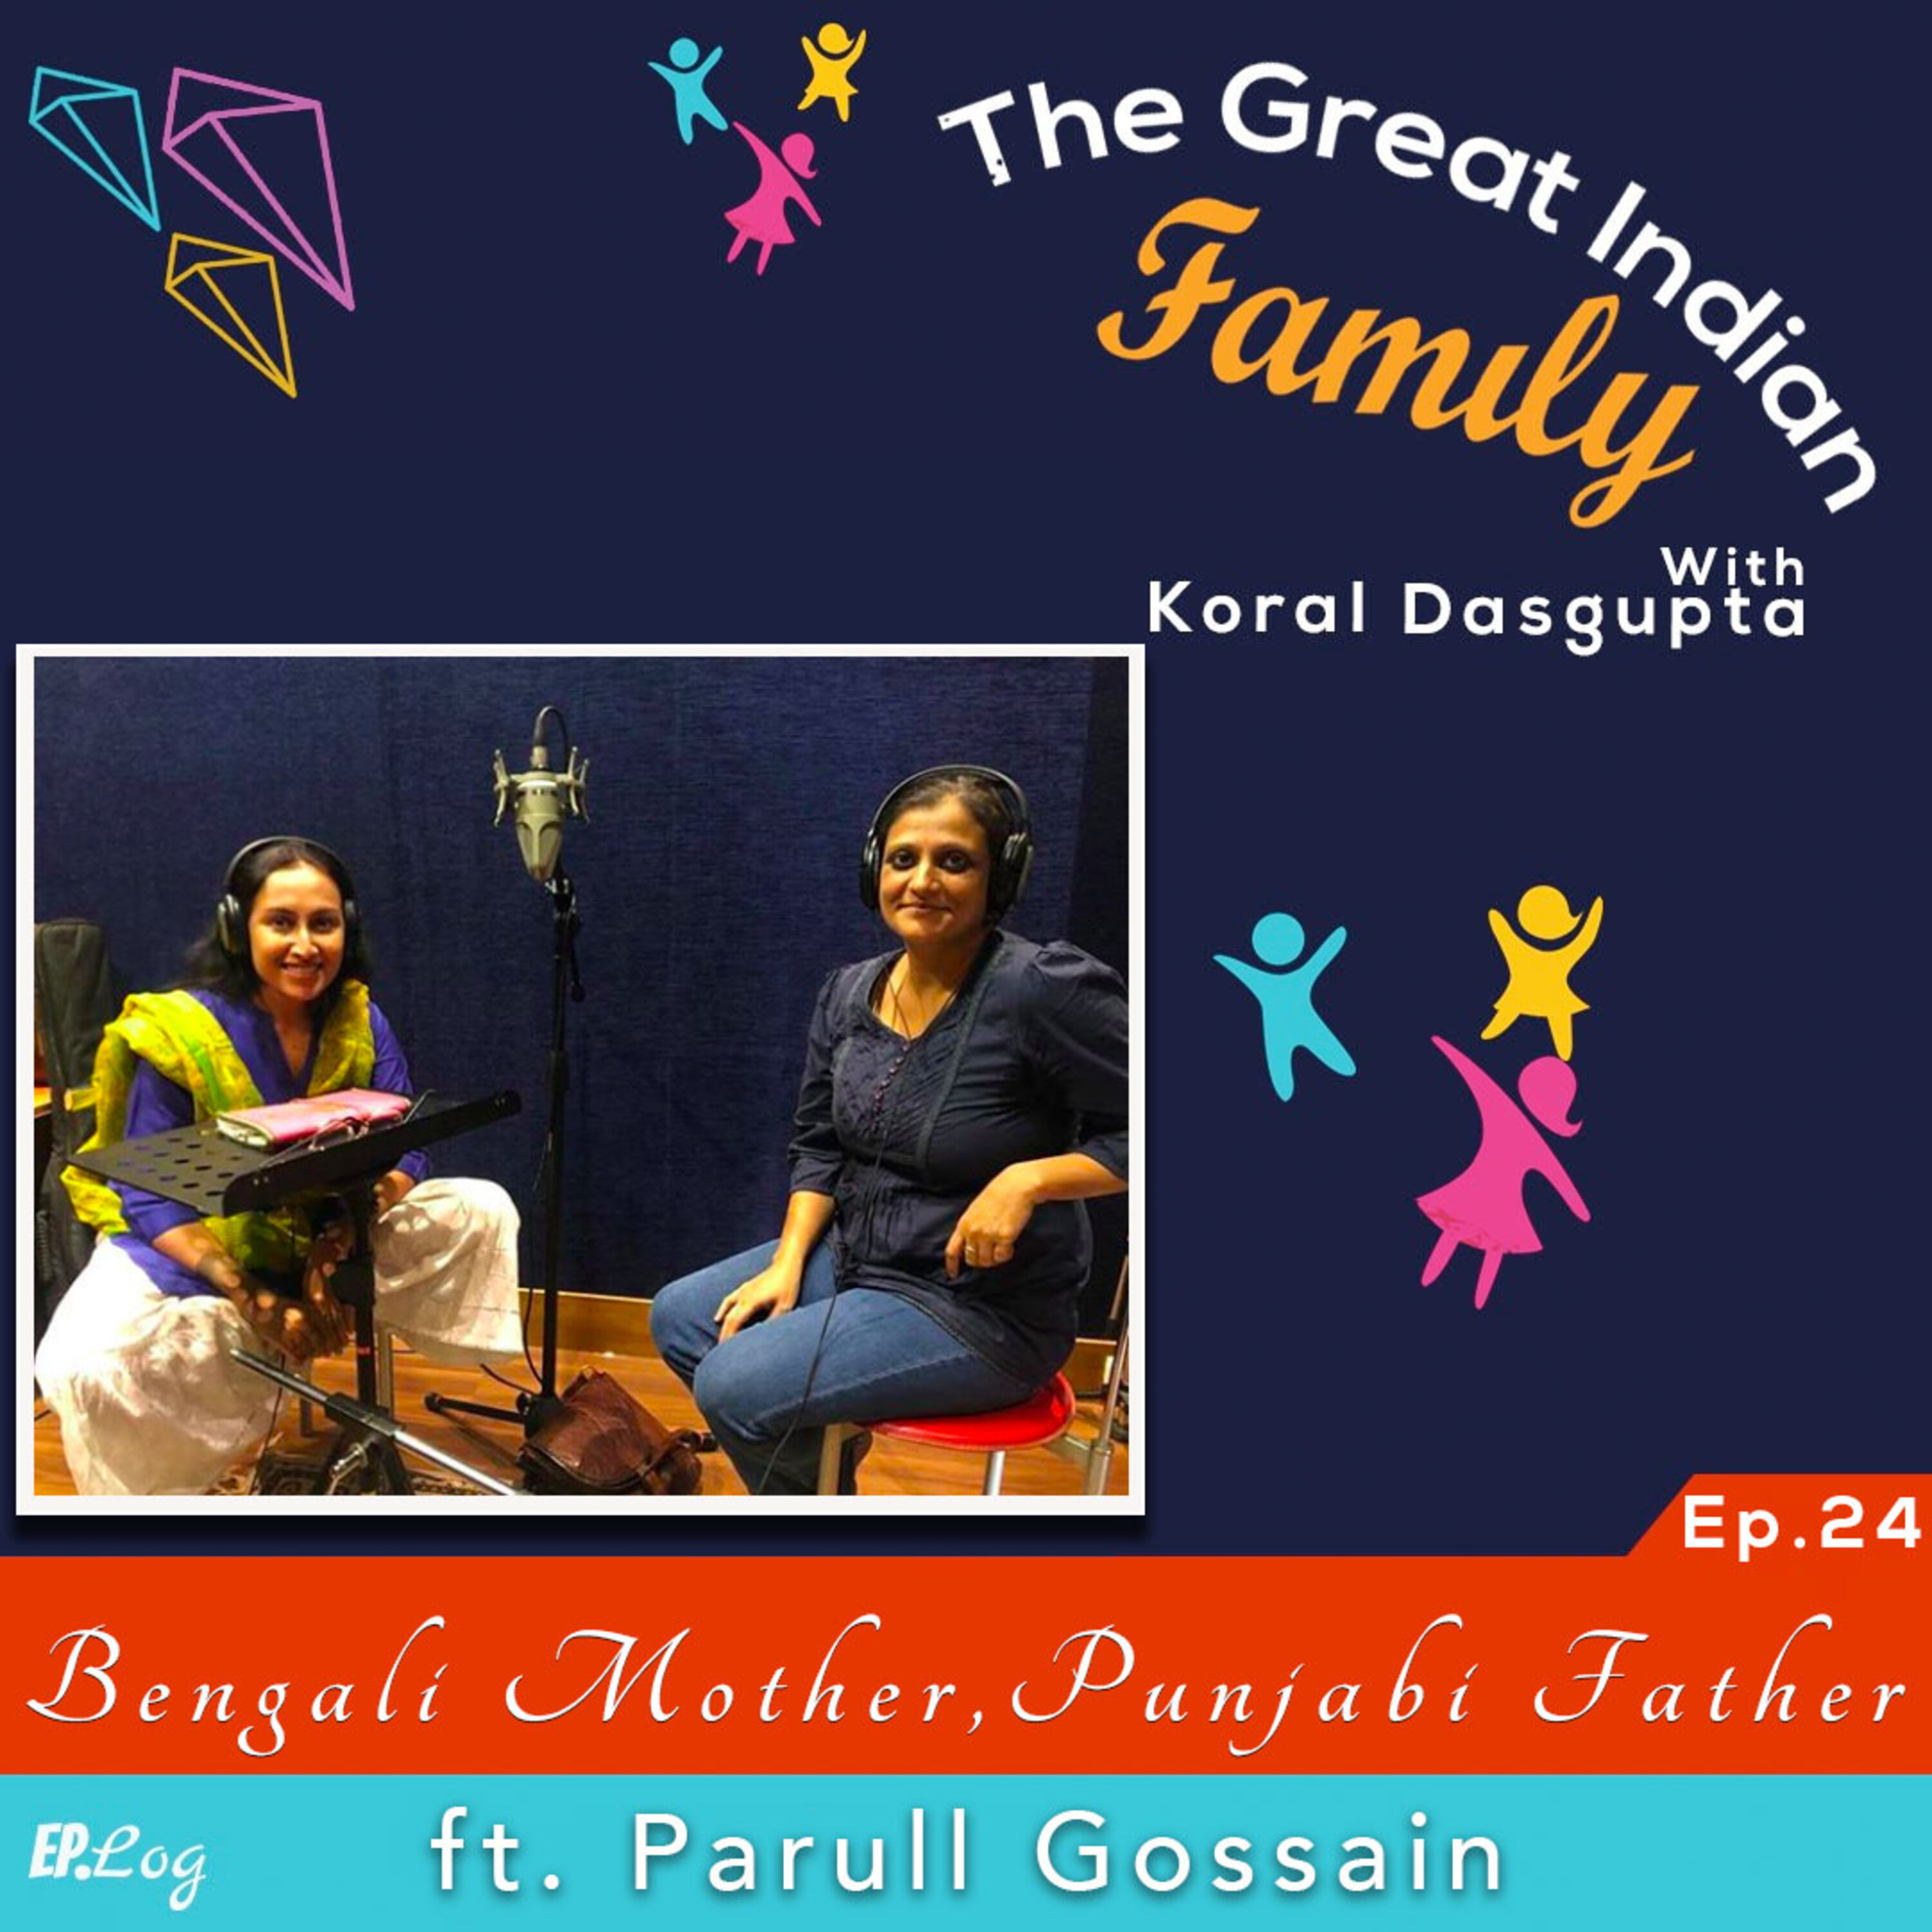 Ep.24 Bengali mother. Punjabi father. And the epic cultural khichdi ft. Parull Gossain, PR Professional